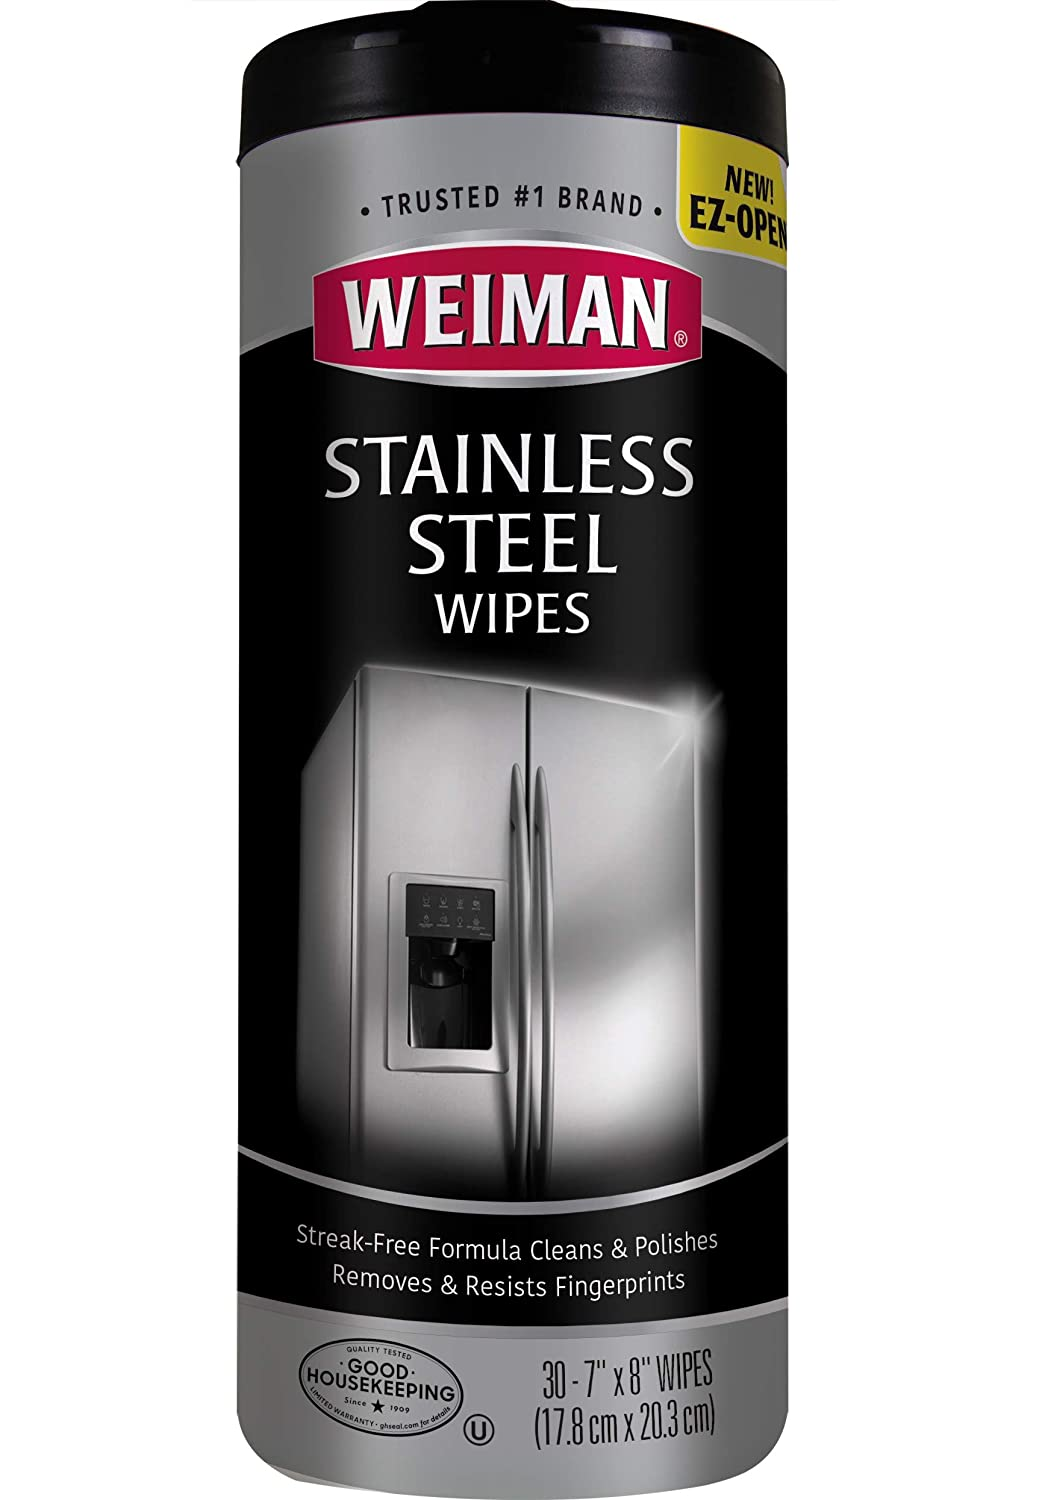 Weiman Stainless Steel Canister Wipes